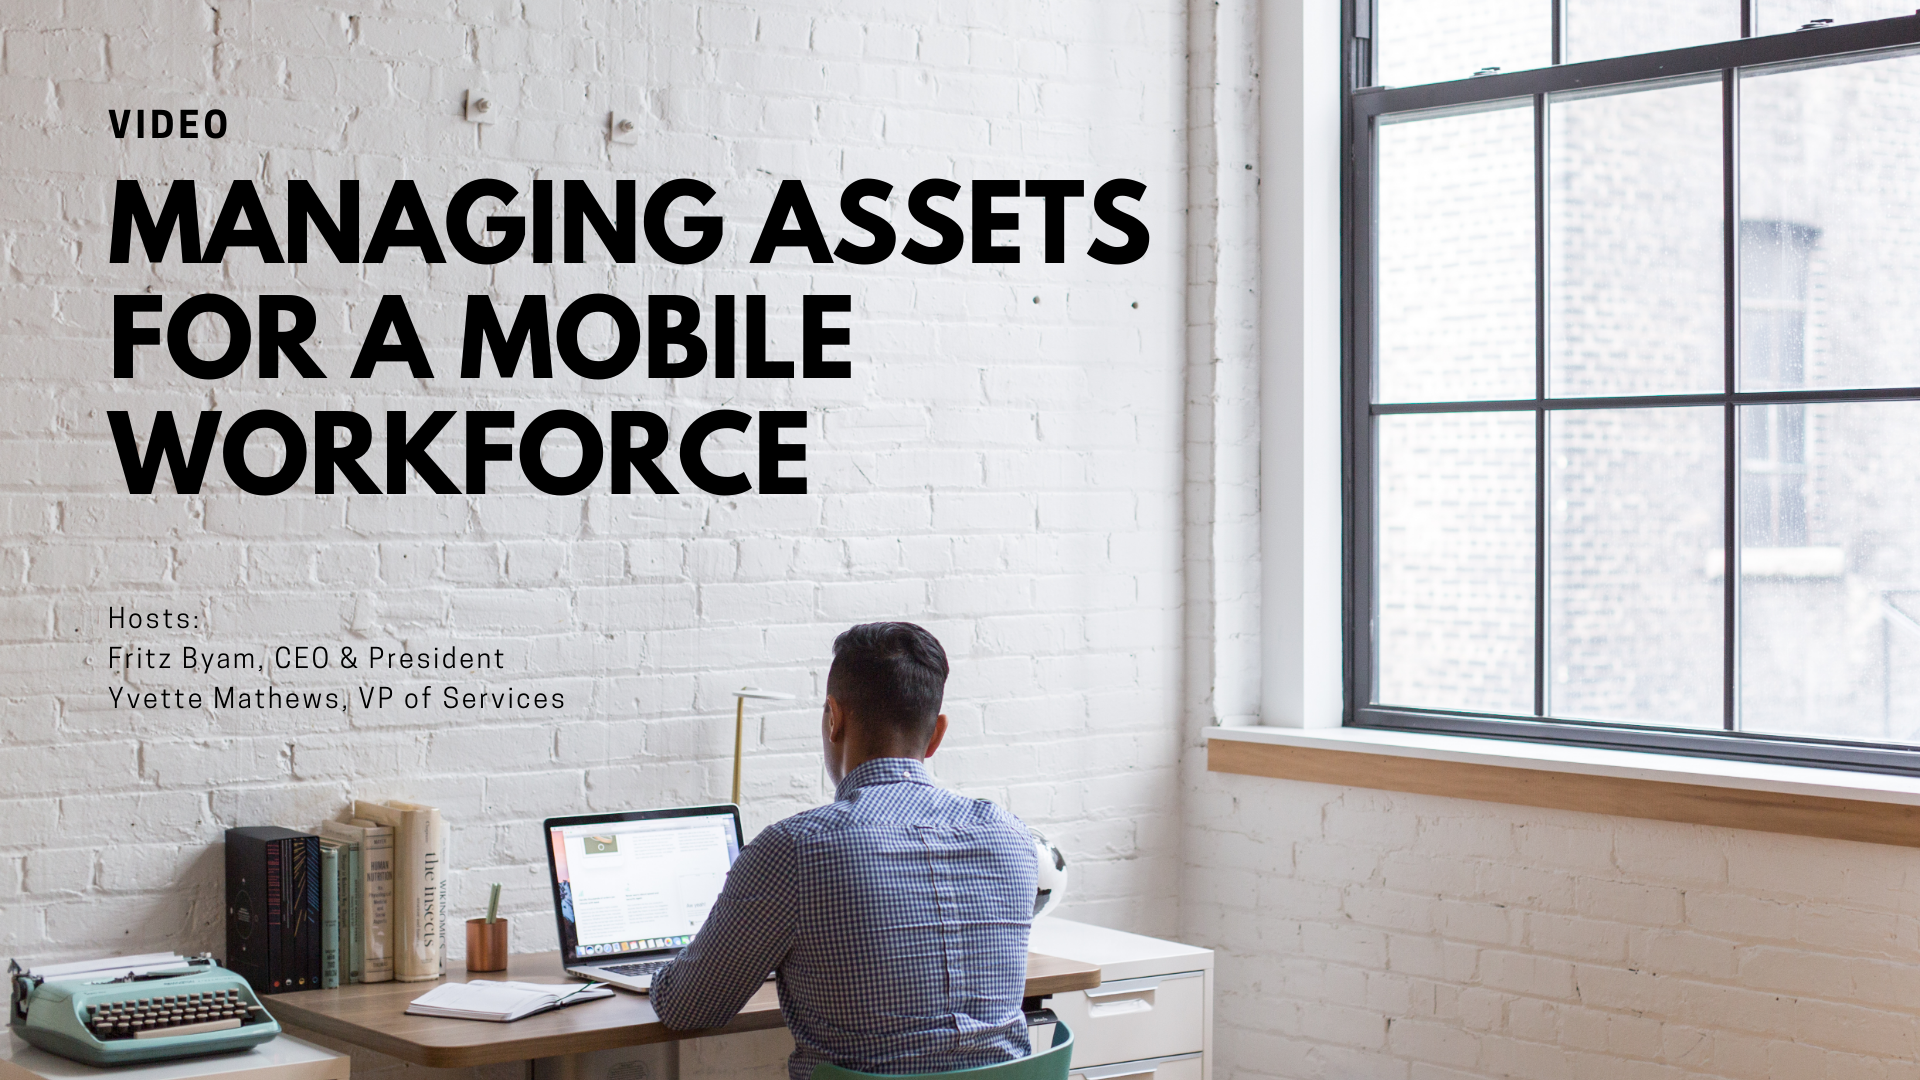 Video-Managing Assets for a mobile workforce